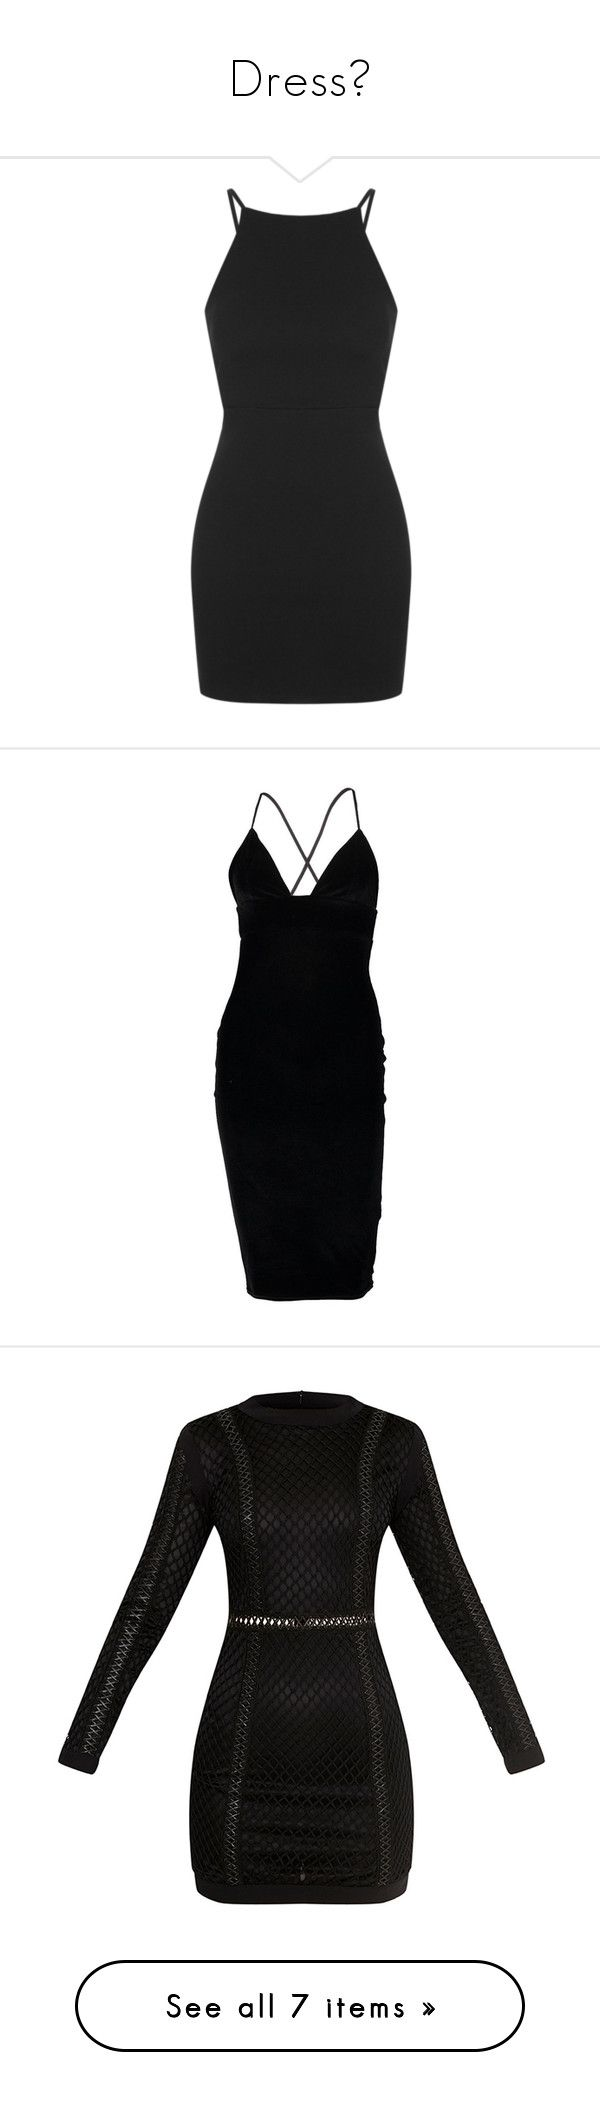 """""""Dress👗"""" by champagnayegang ❤ liked on Polyvore featuring dresses, vestidos, topshop, short dresses, petite, bodycon dress, side cutout dresses, petite dresses, mini cocktail dress and body con dresses"""